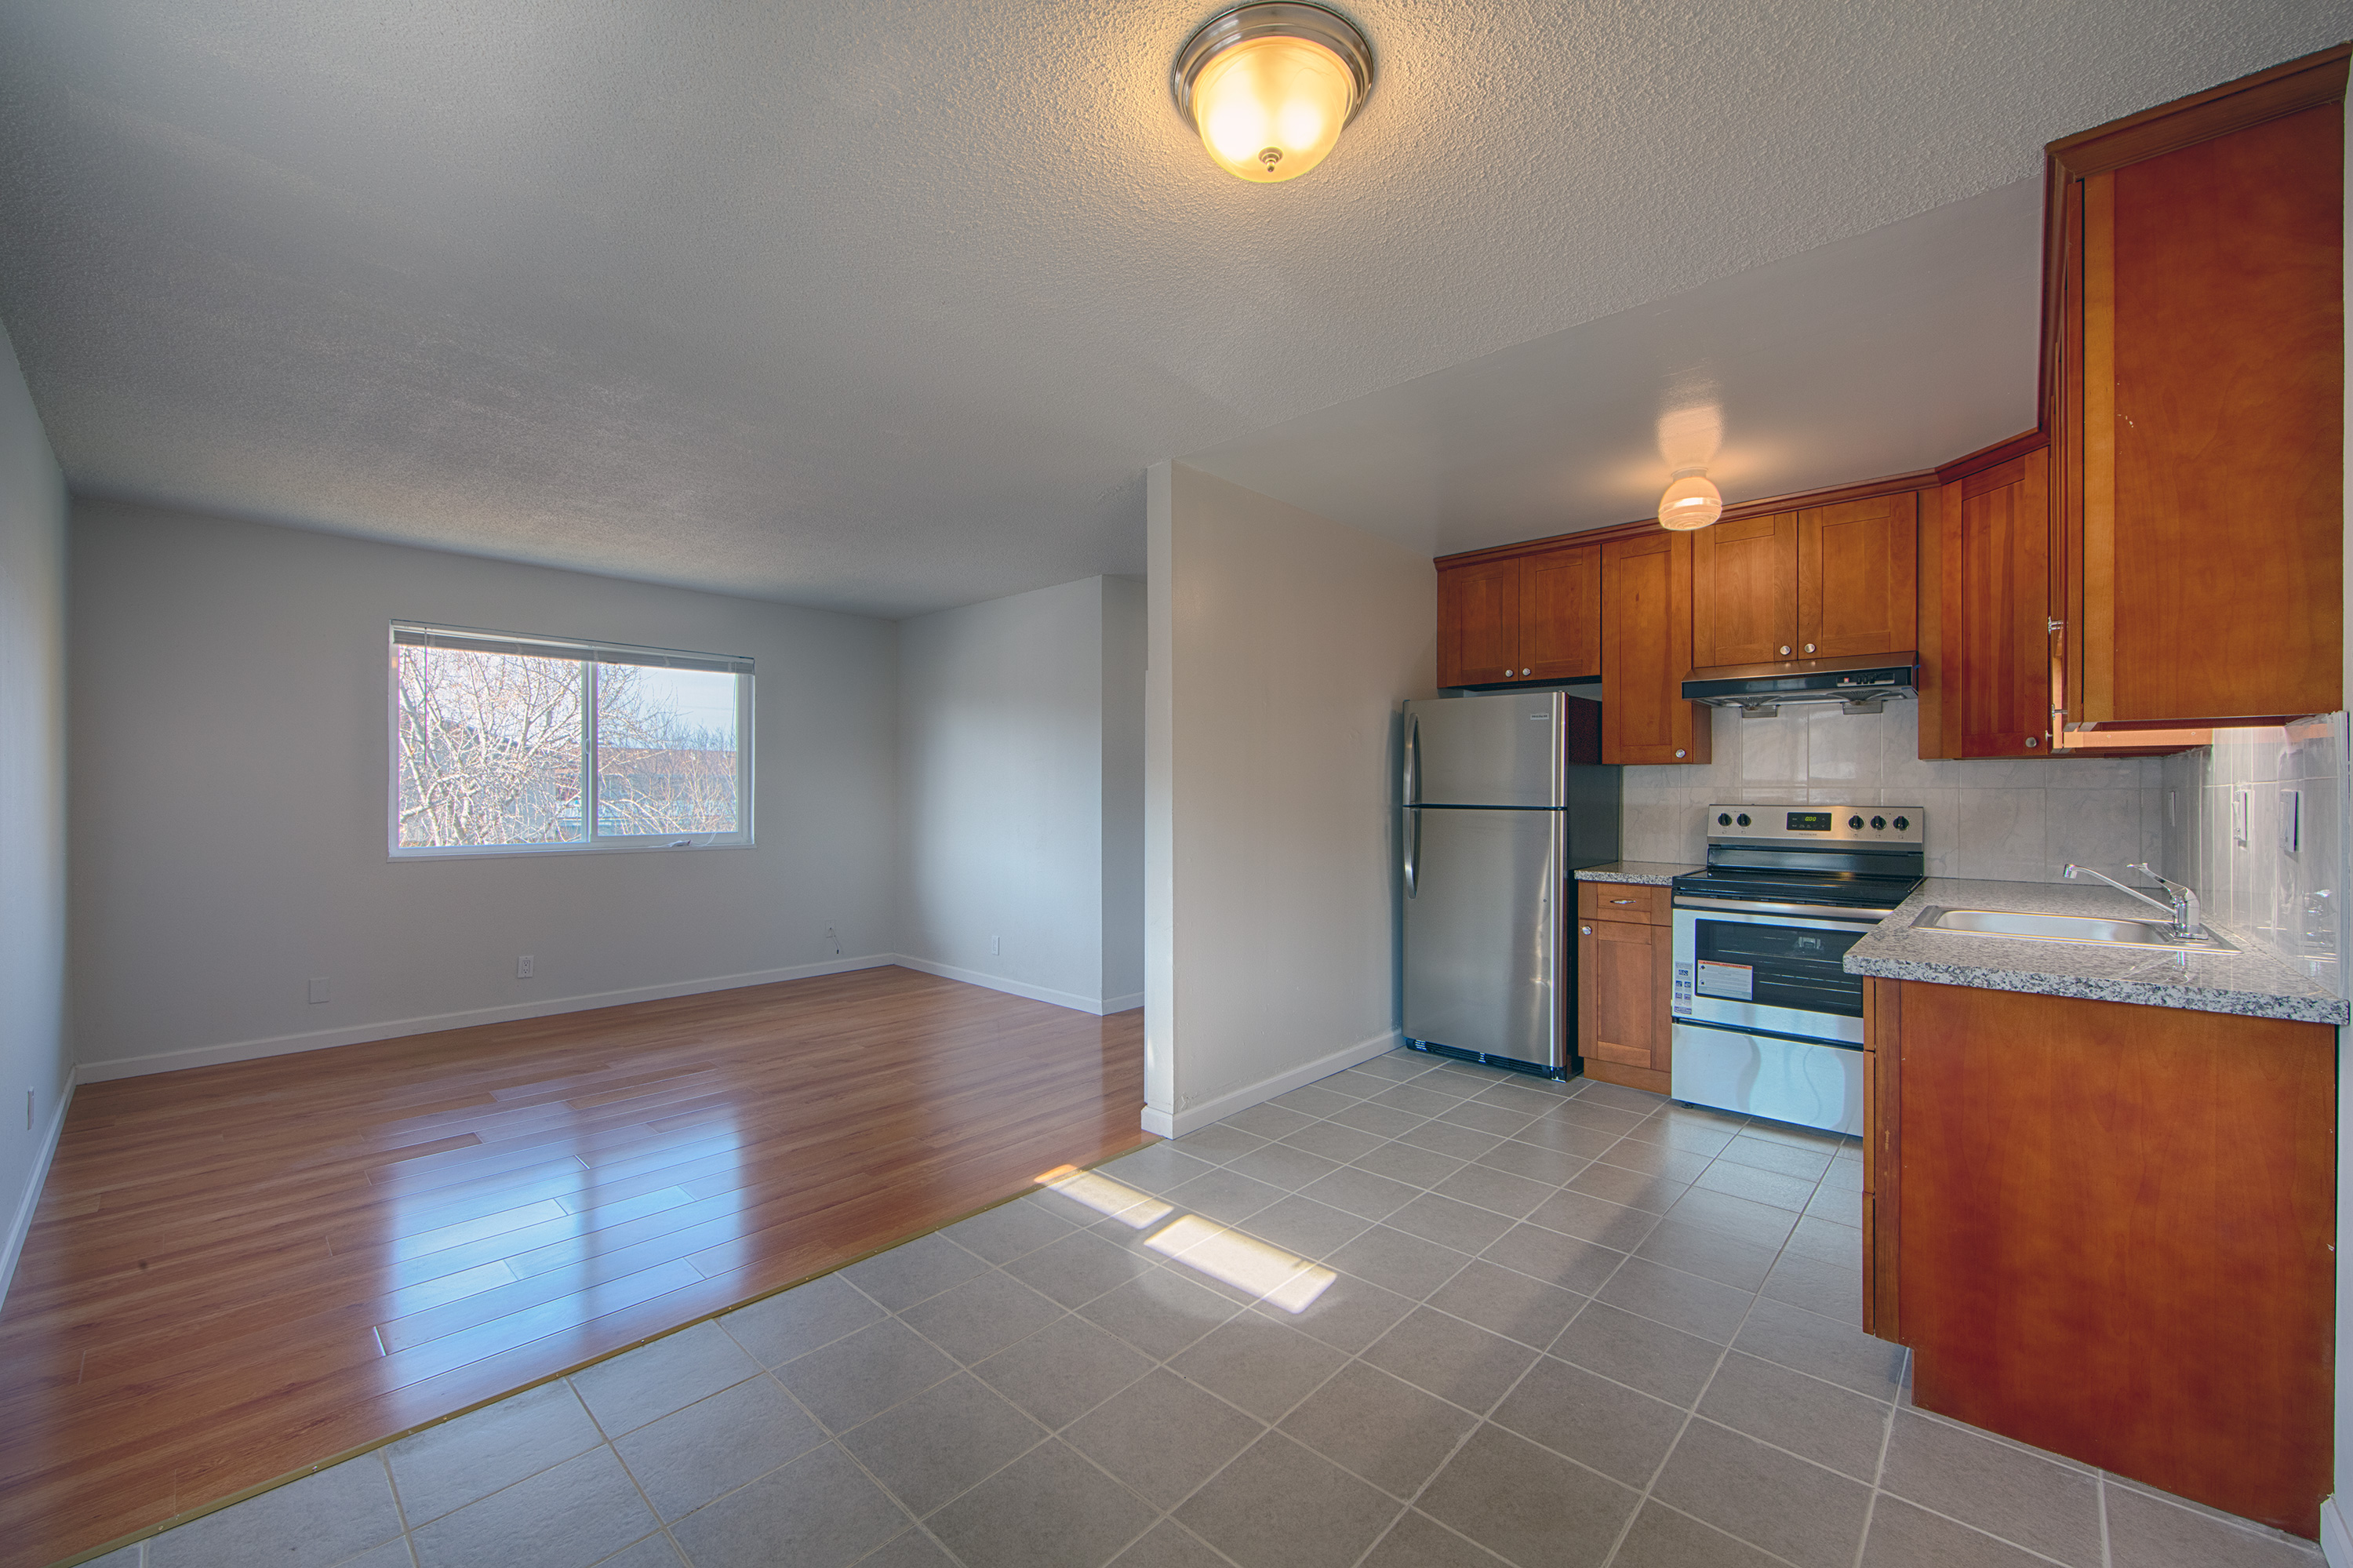 1662 Ontario Dr, Sunnyvale 94087 - Unit 3 Dining Area (A)